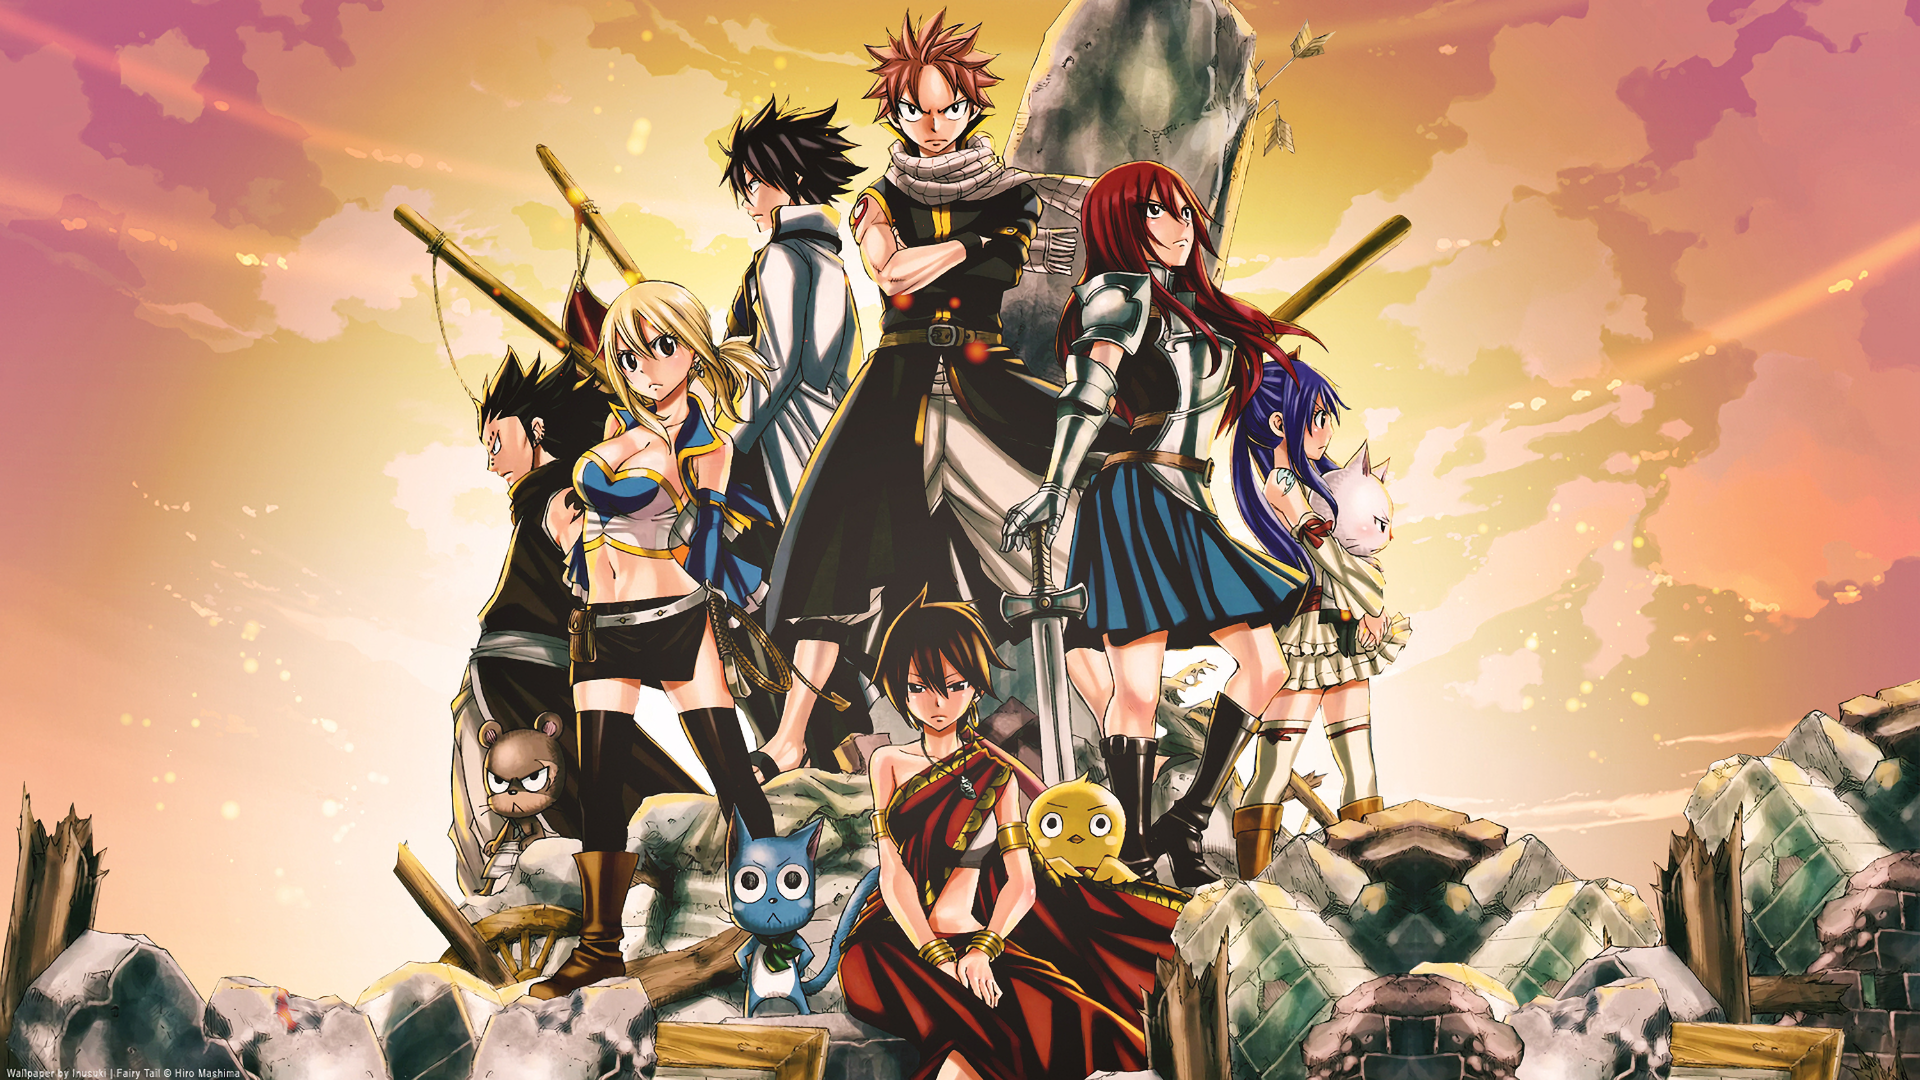 Fairy Tail Images - Pack.78